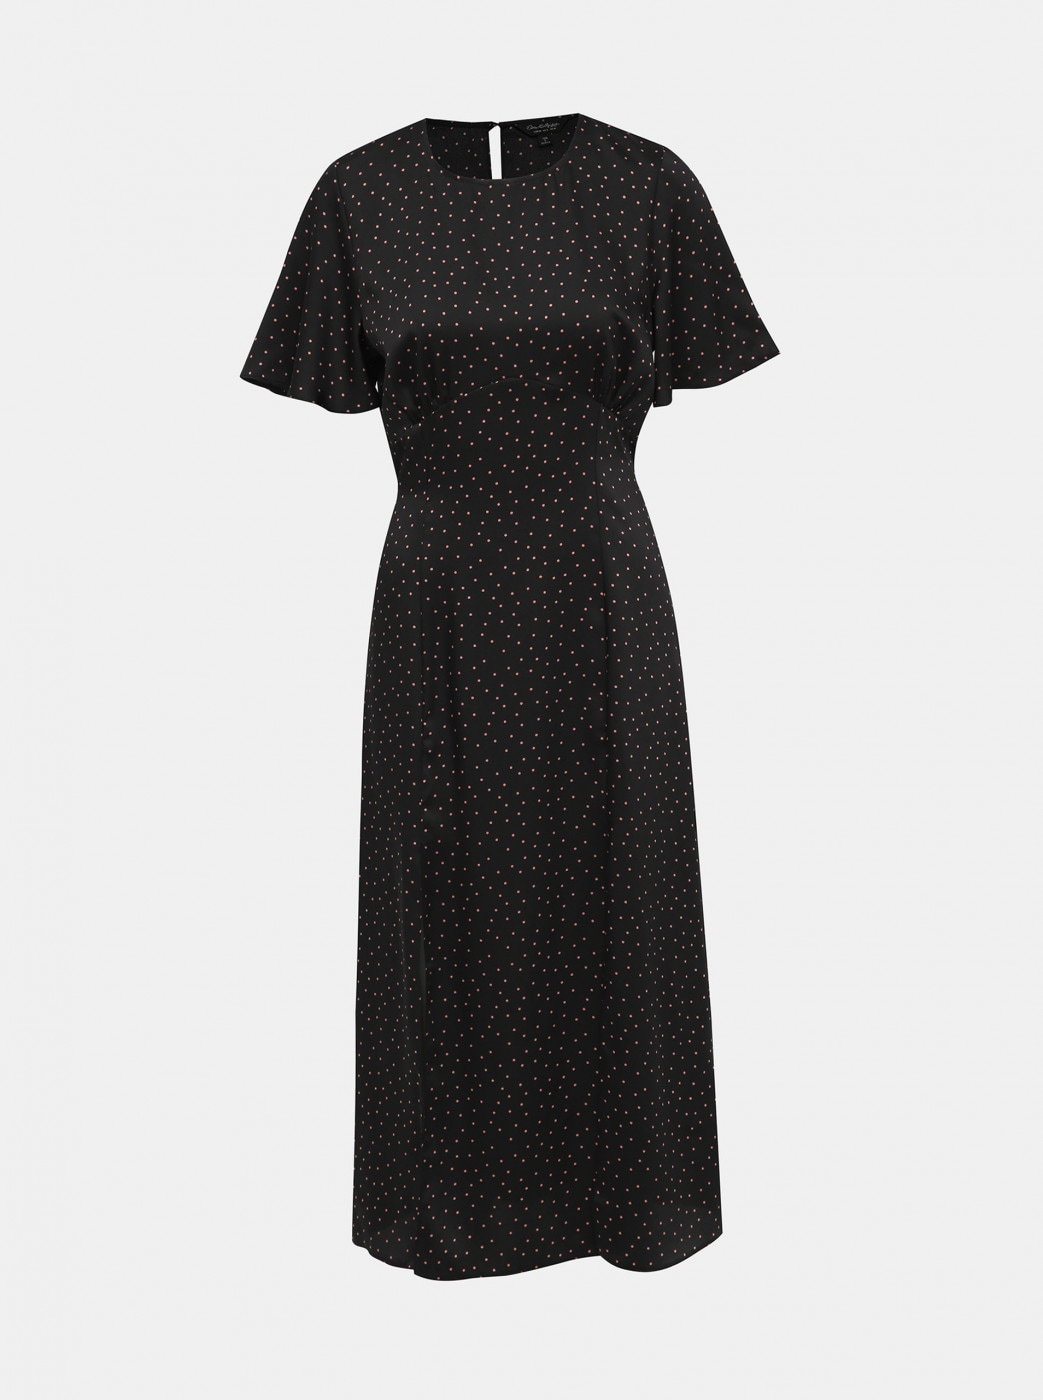 Miss Selfridge's Black Polka Dot Maxi Dress